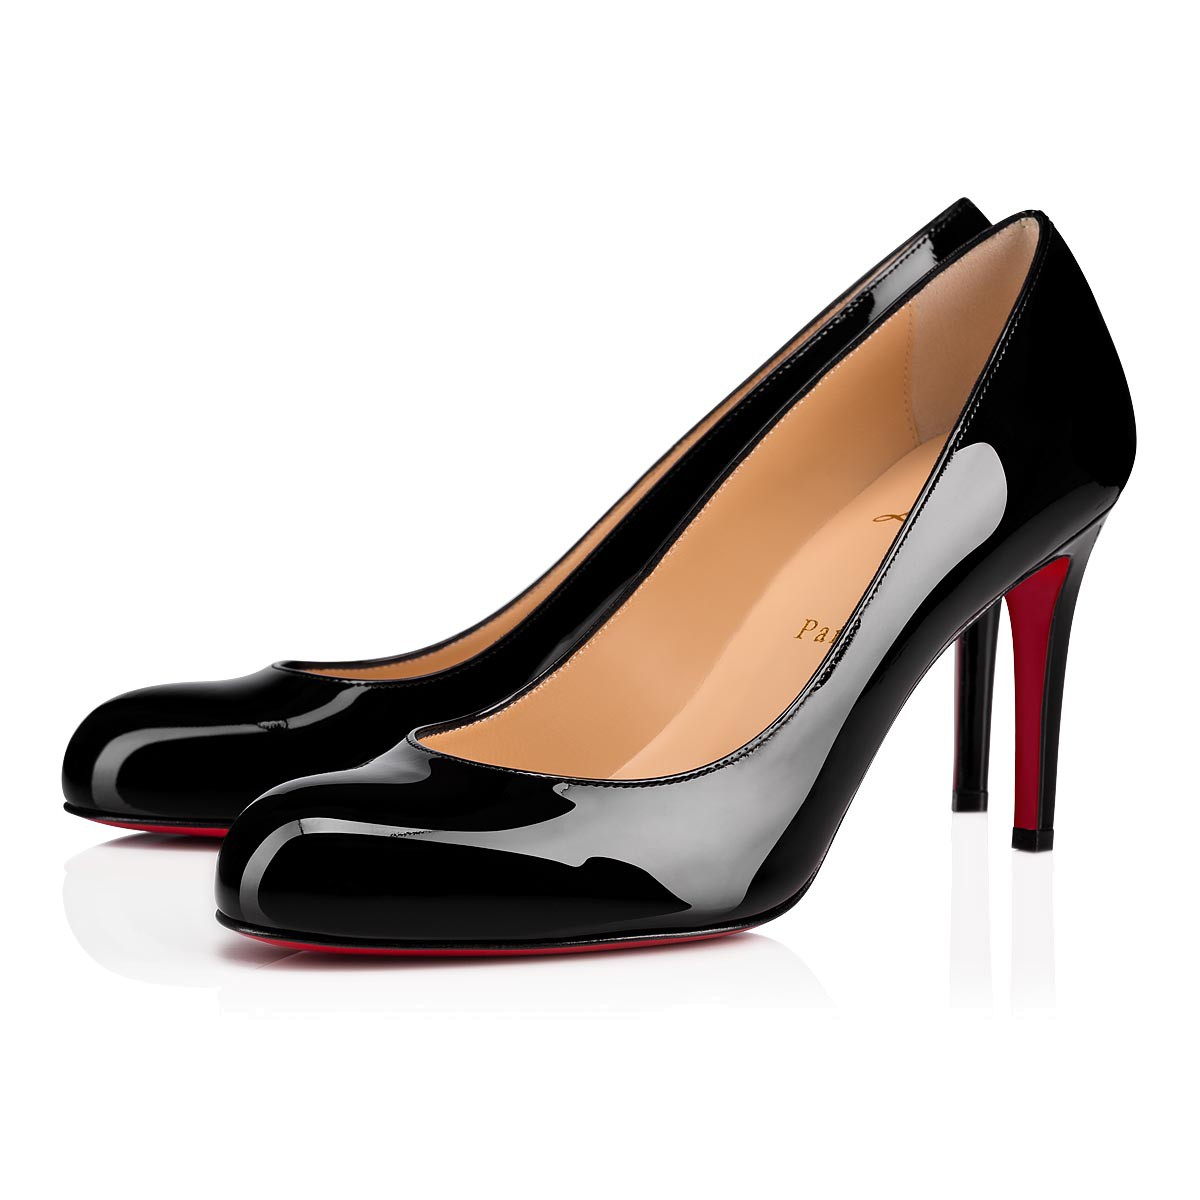 f0f4e864a29 Simple Pump 85 Black Patent Leather - Women Shoes - Christian Louboutin